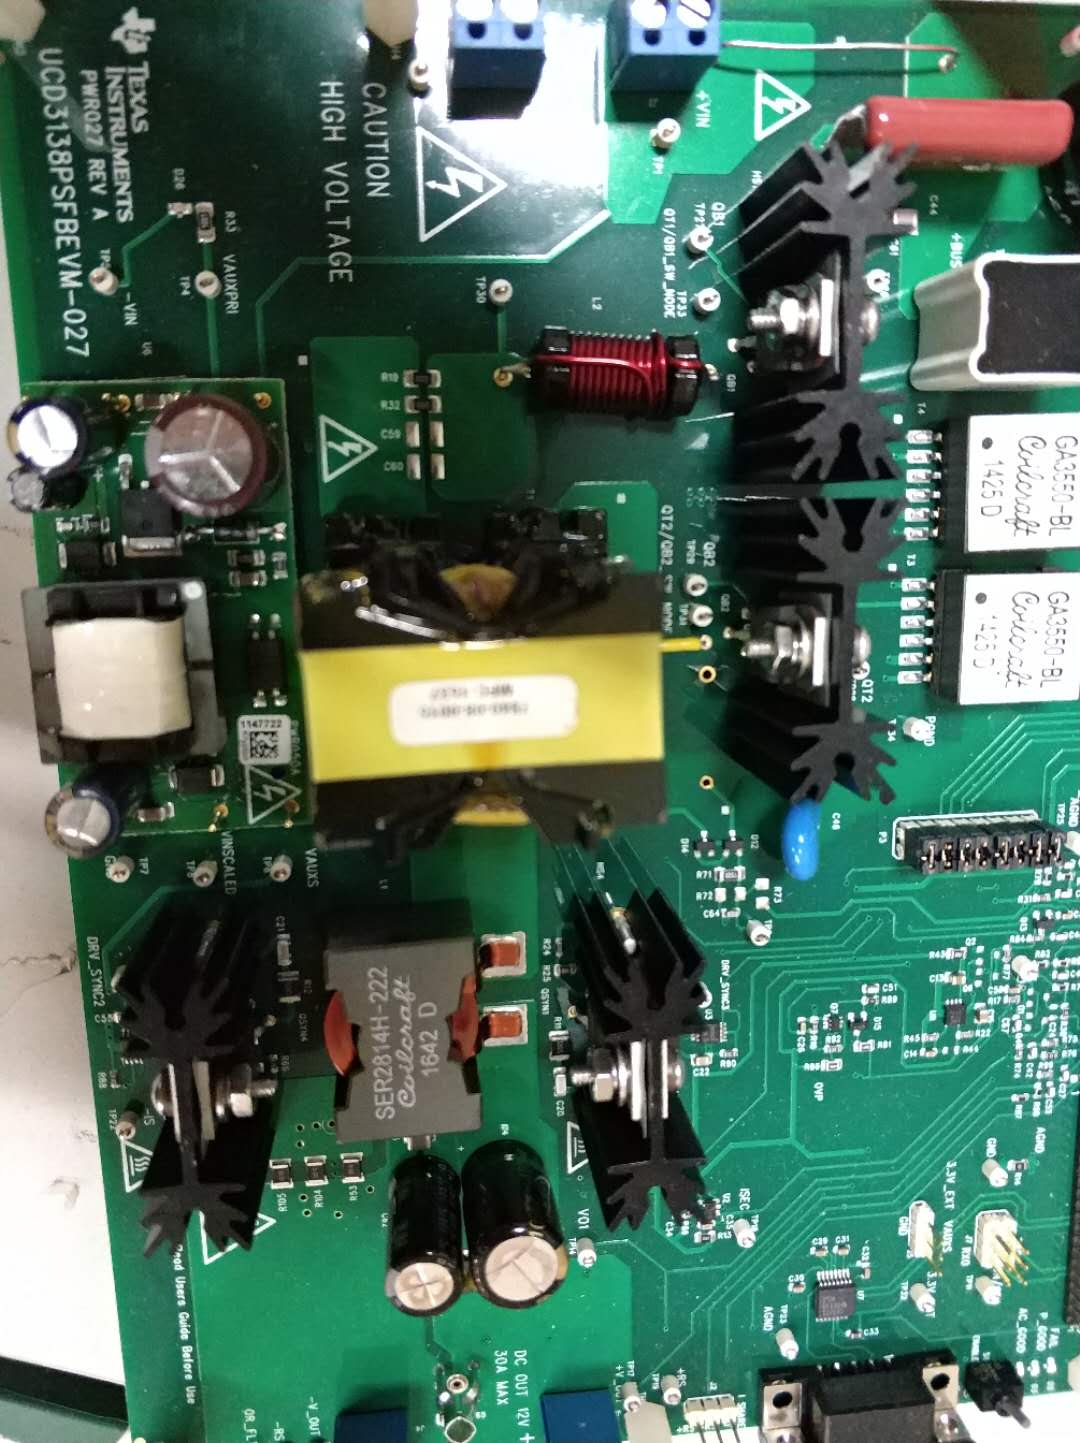 Resolved Ucd3138psfbevm 027 How Can The Tested Electrical Circuit Training Board Thanks Sincerely